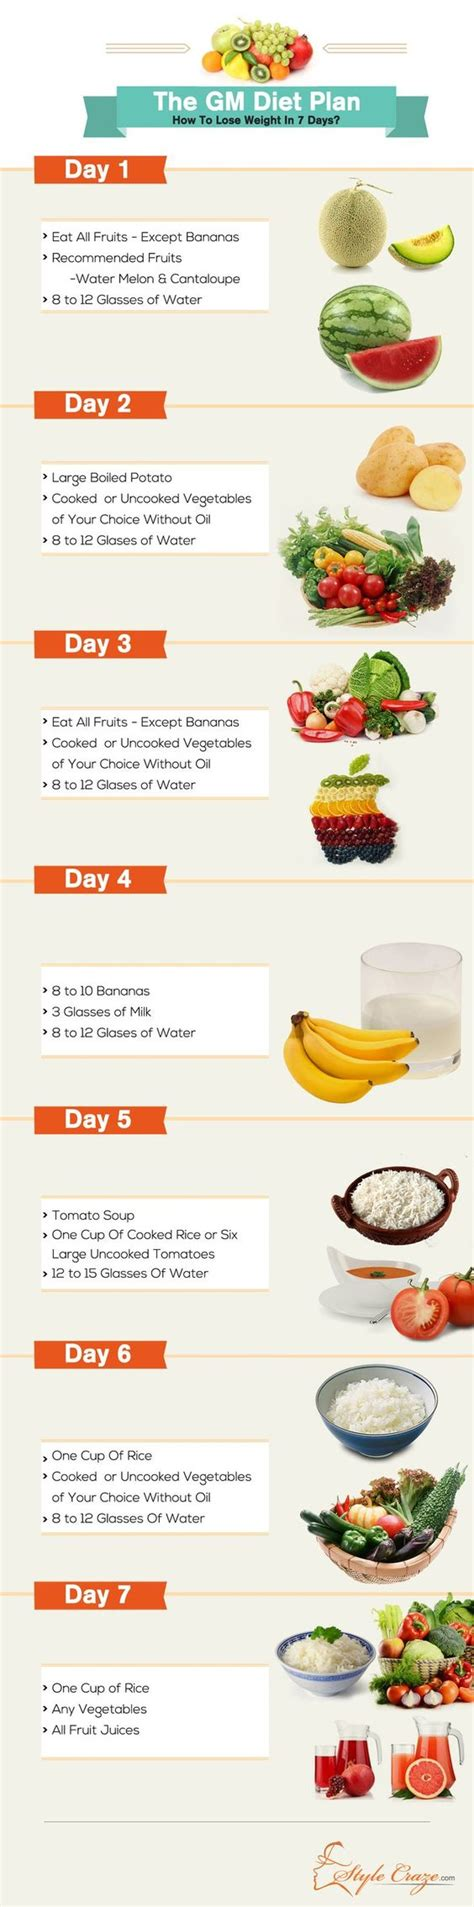 6 Day Detox Diet by The Gm Diet Plan How To Lose Weight In Just 7 Days To